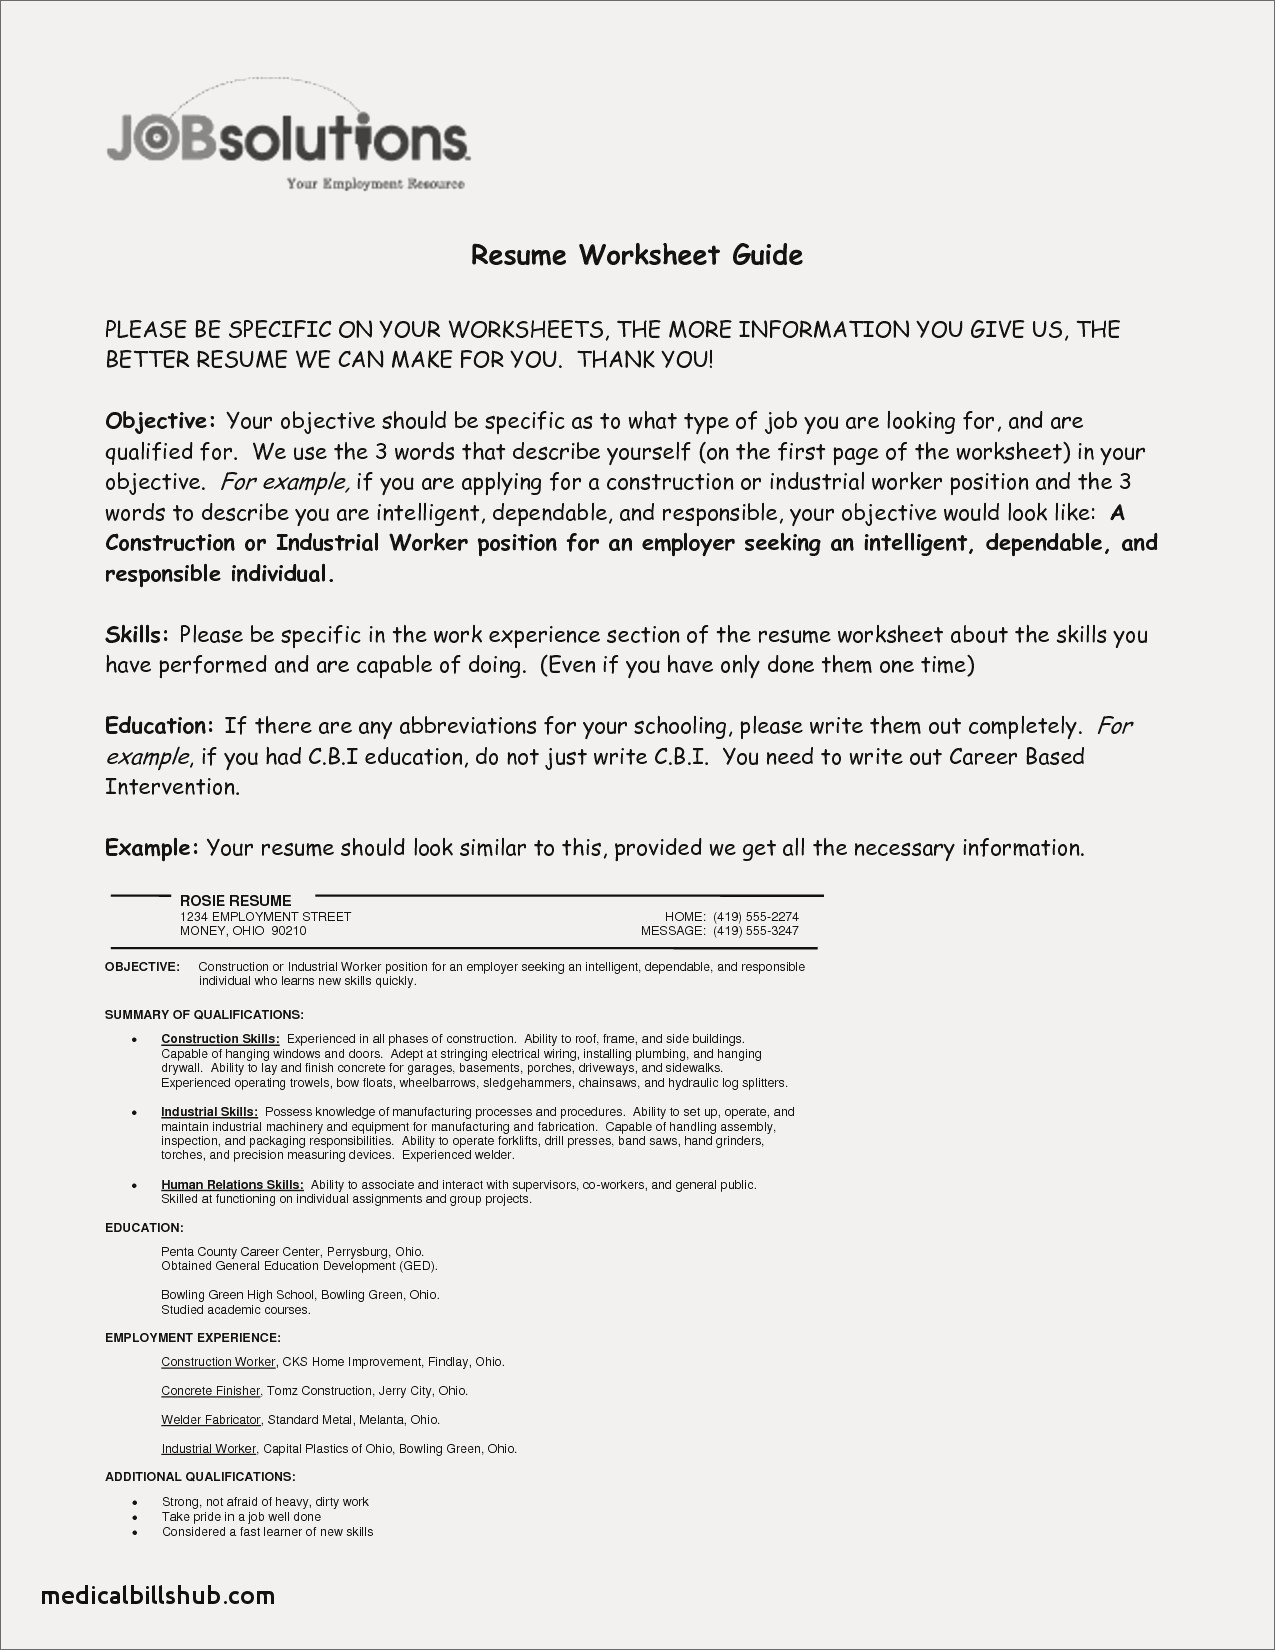 Resume Introduction Examples - Objective for Resume Healthcare Example Best Best Sample College